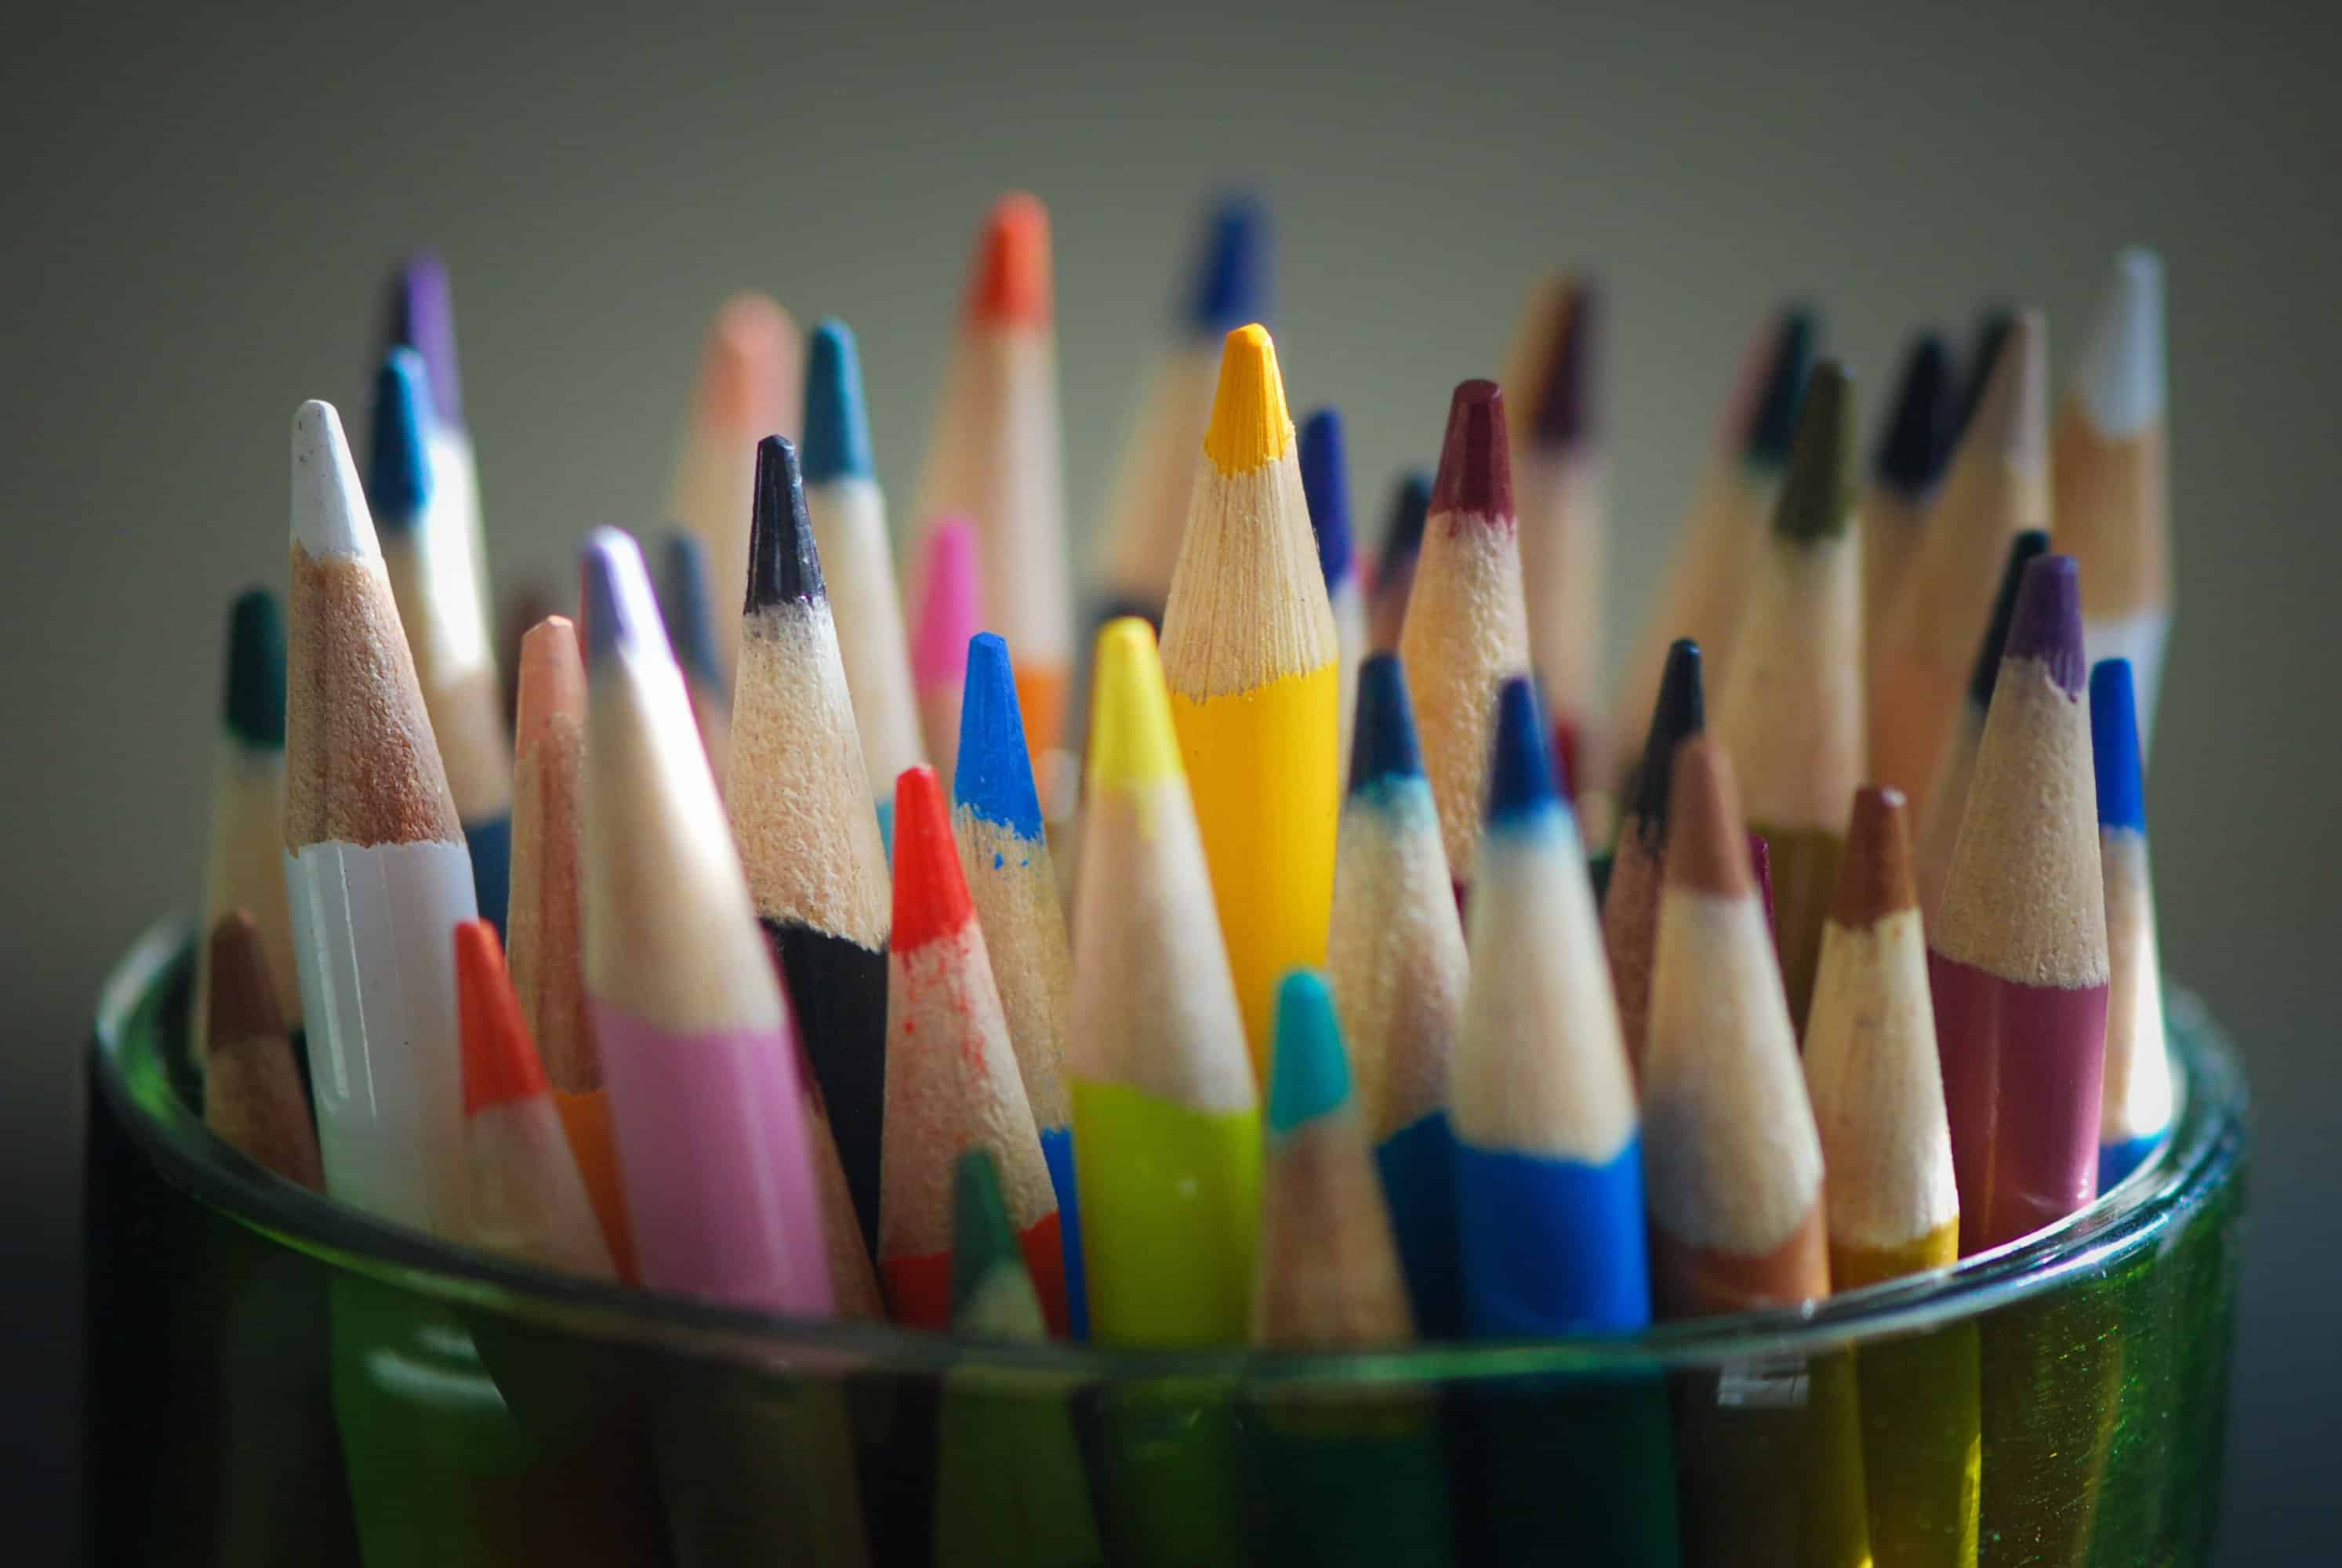 Ways to relax your mind and body with coloring. Colored pencils can be used when coloring